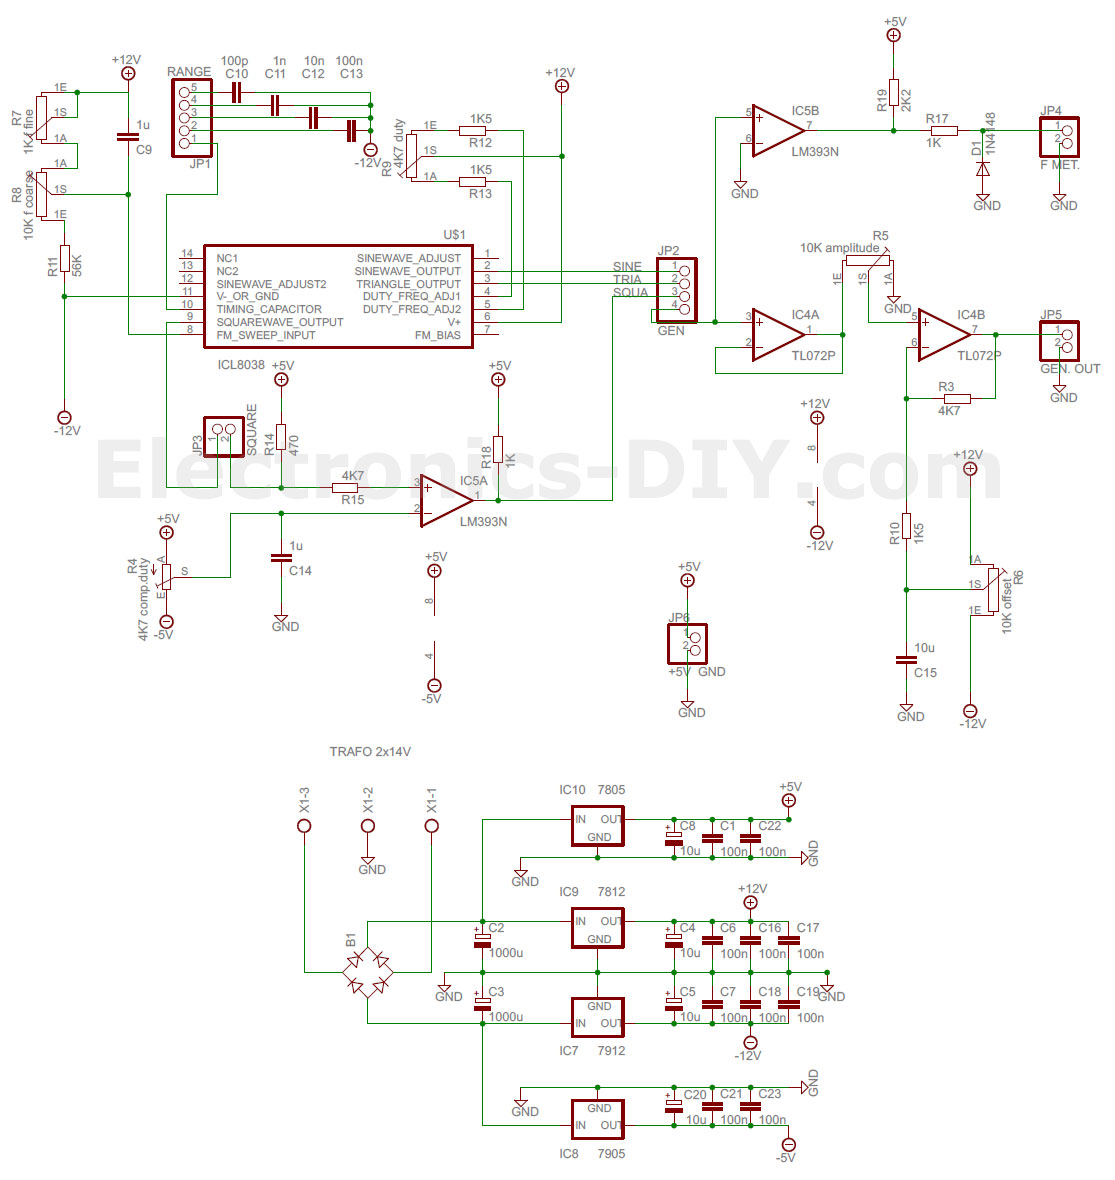 Icl8038 Function Generator Homemade 12v Wire Diagram